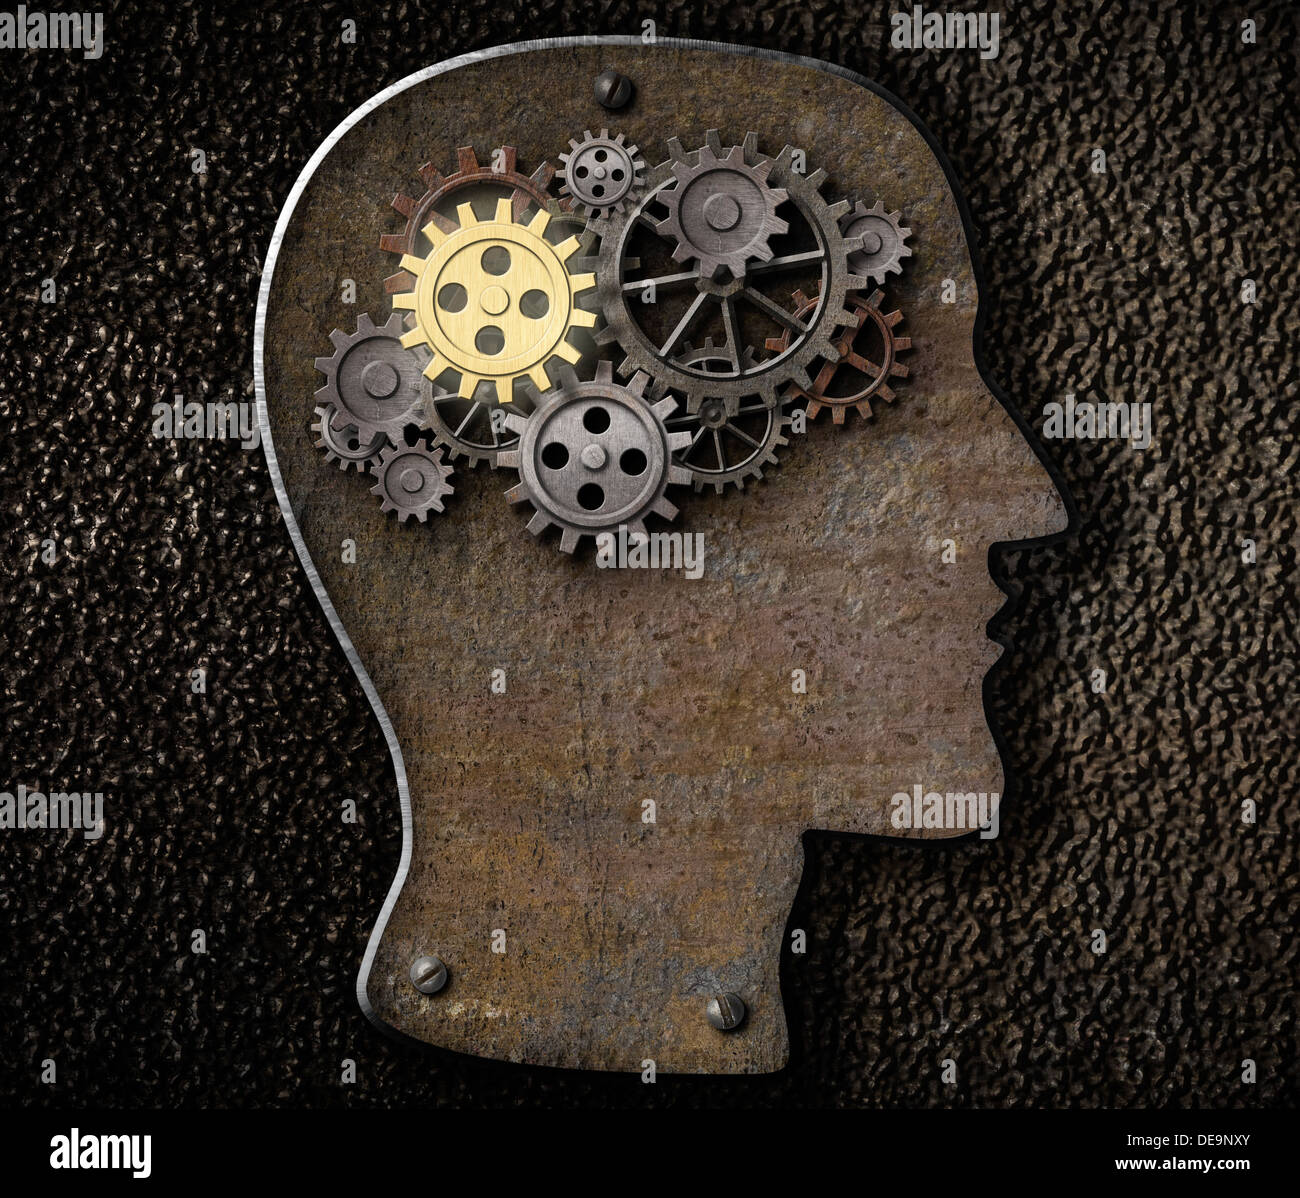 Brain mechanism gears and cogs made from rusty metal - Stock Image